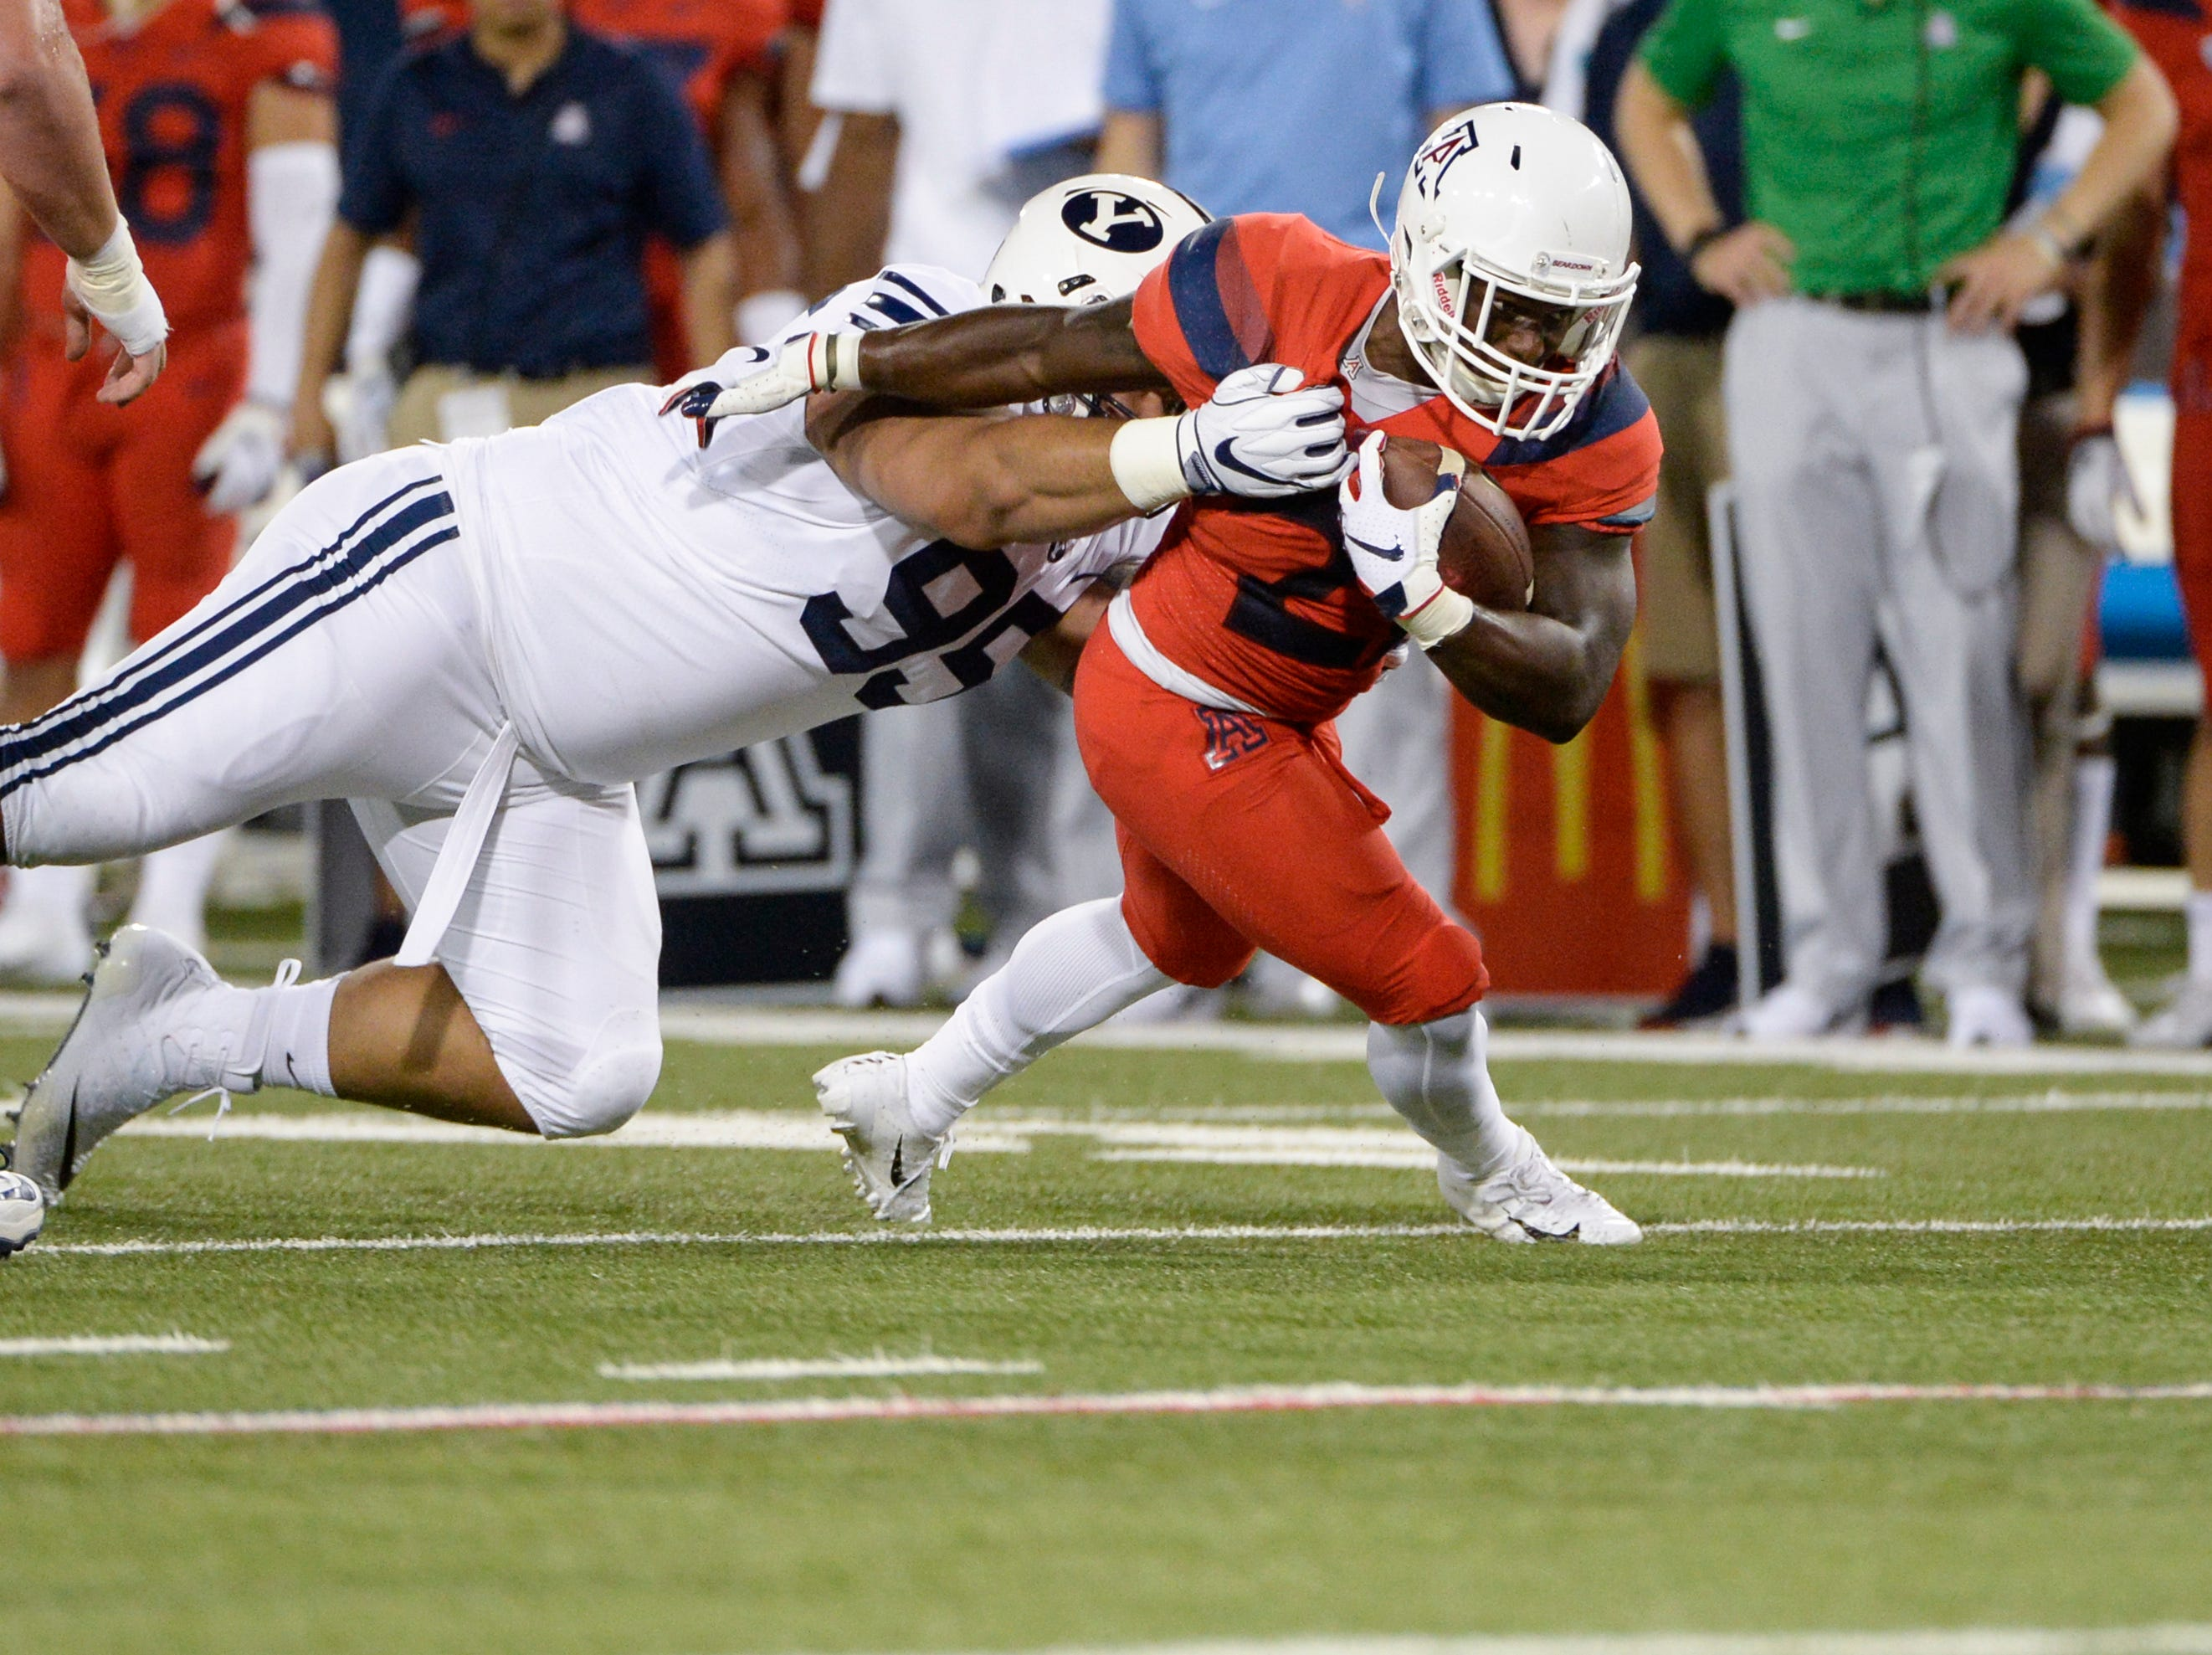 Sep 1, 2018; Tucson, AZ, USA; Arizona Wildcats running back J.J. Taylor (21) runs with the football tackled by Brigham Young Cougars defensive lineman Khyiris Tonga (95) during the first quarter at Arizona Stadium.